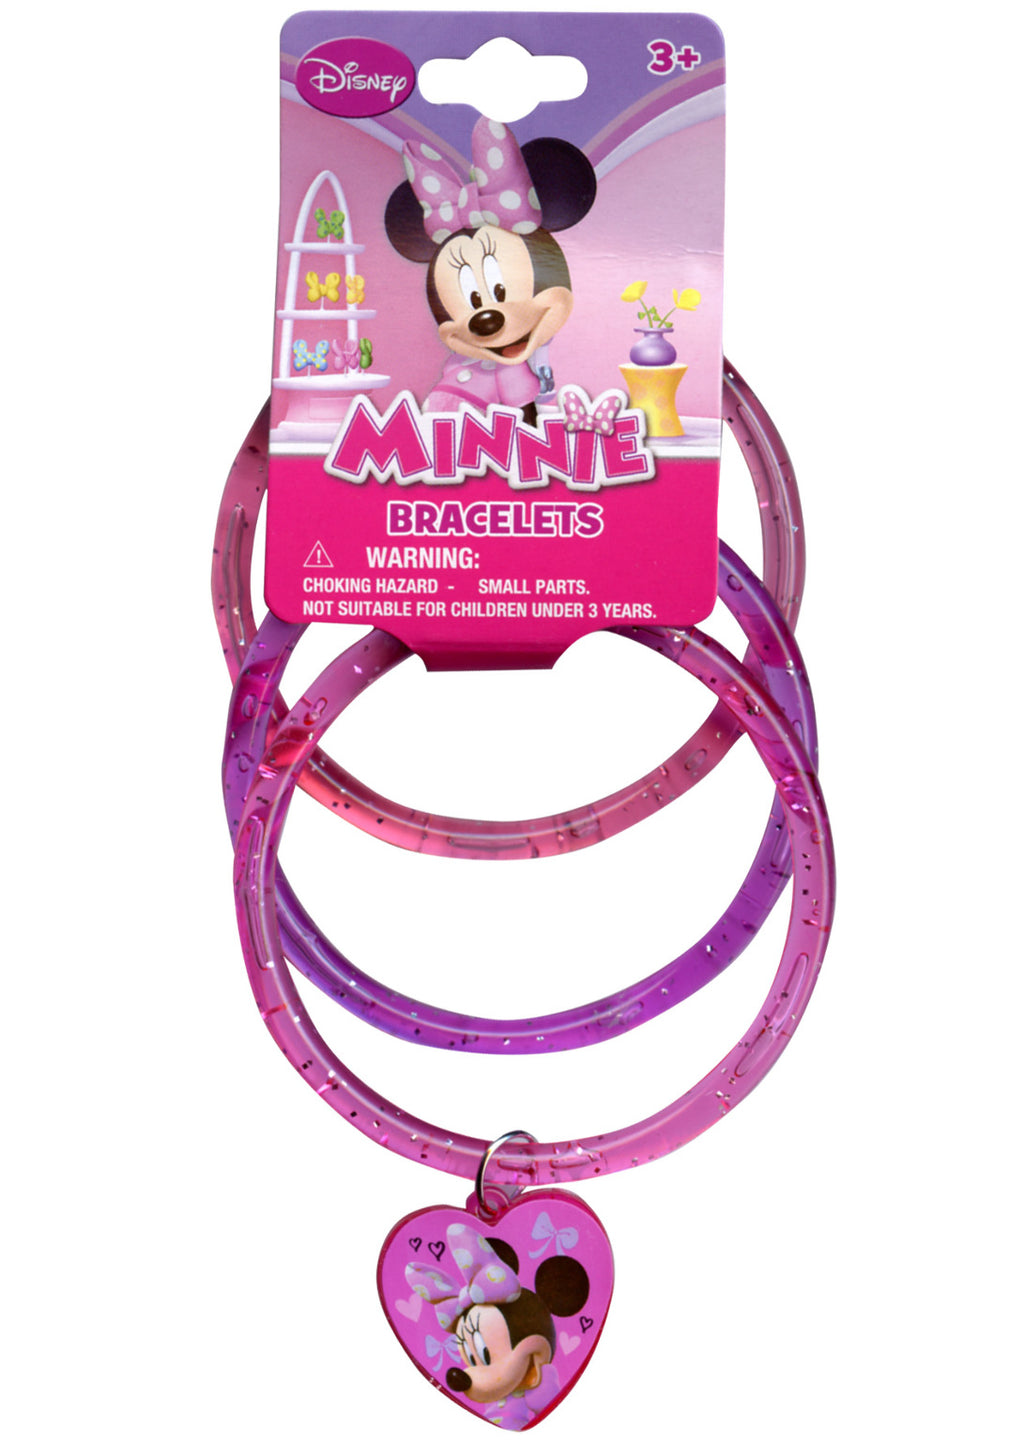 Minnie Glitter Bangles with Plastic Charm - CASE OF 288